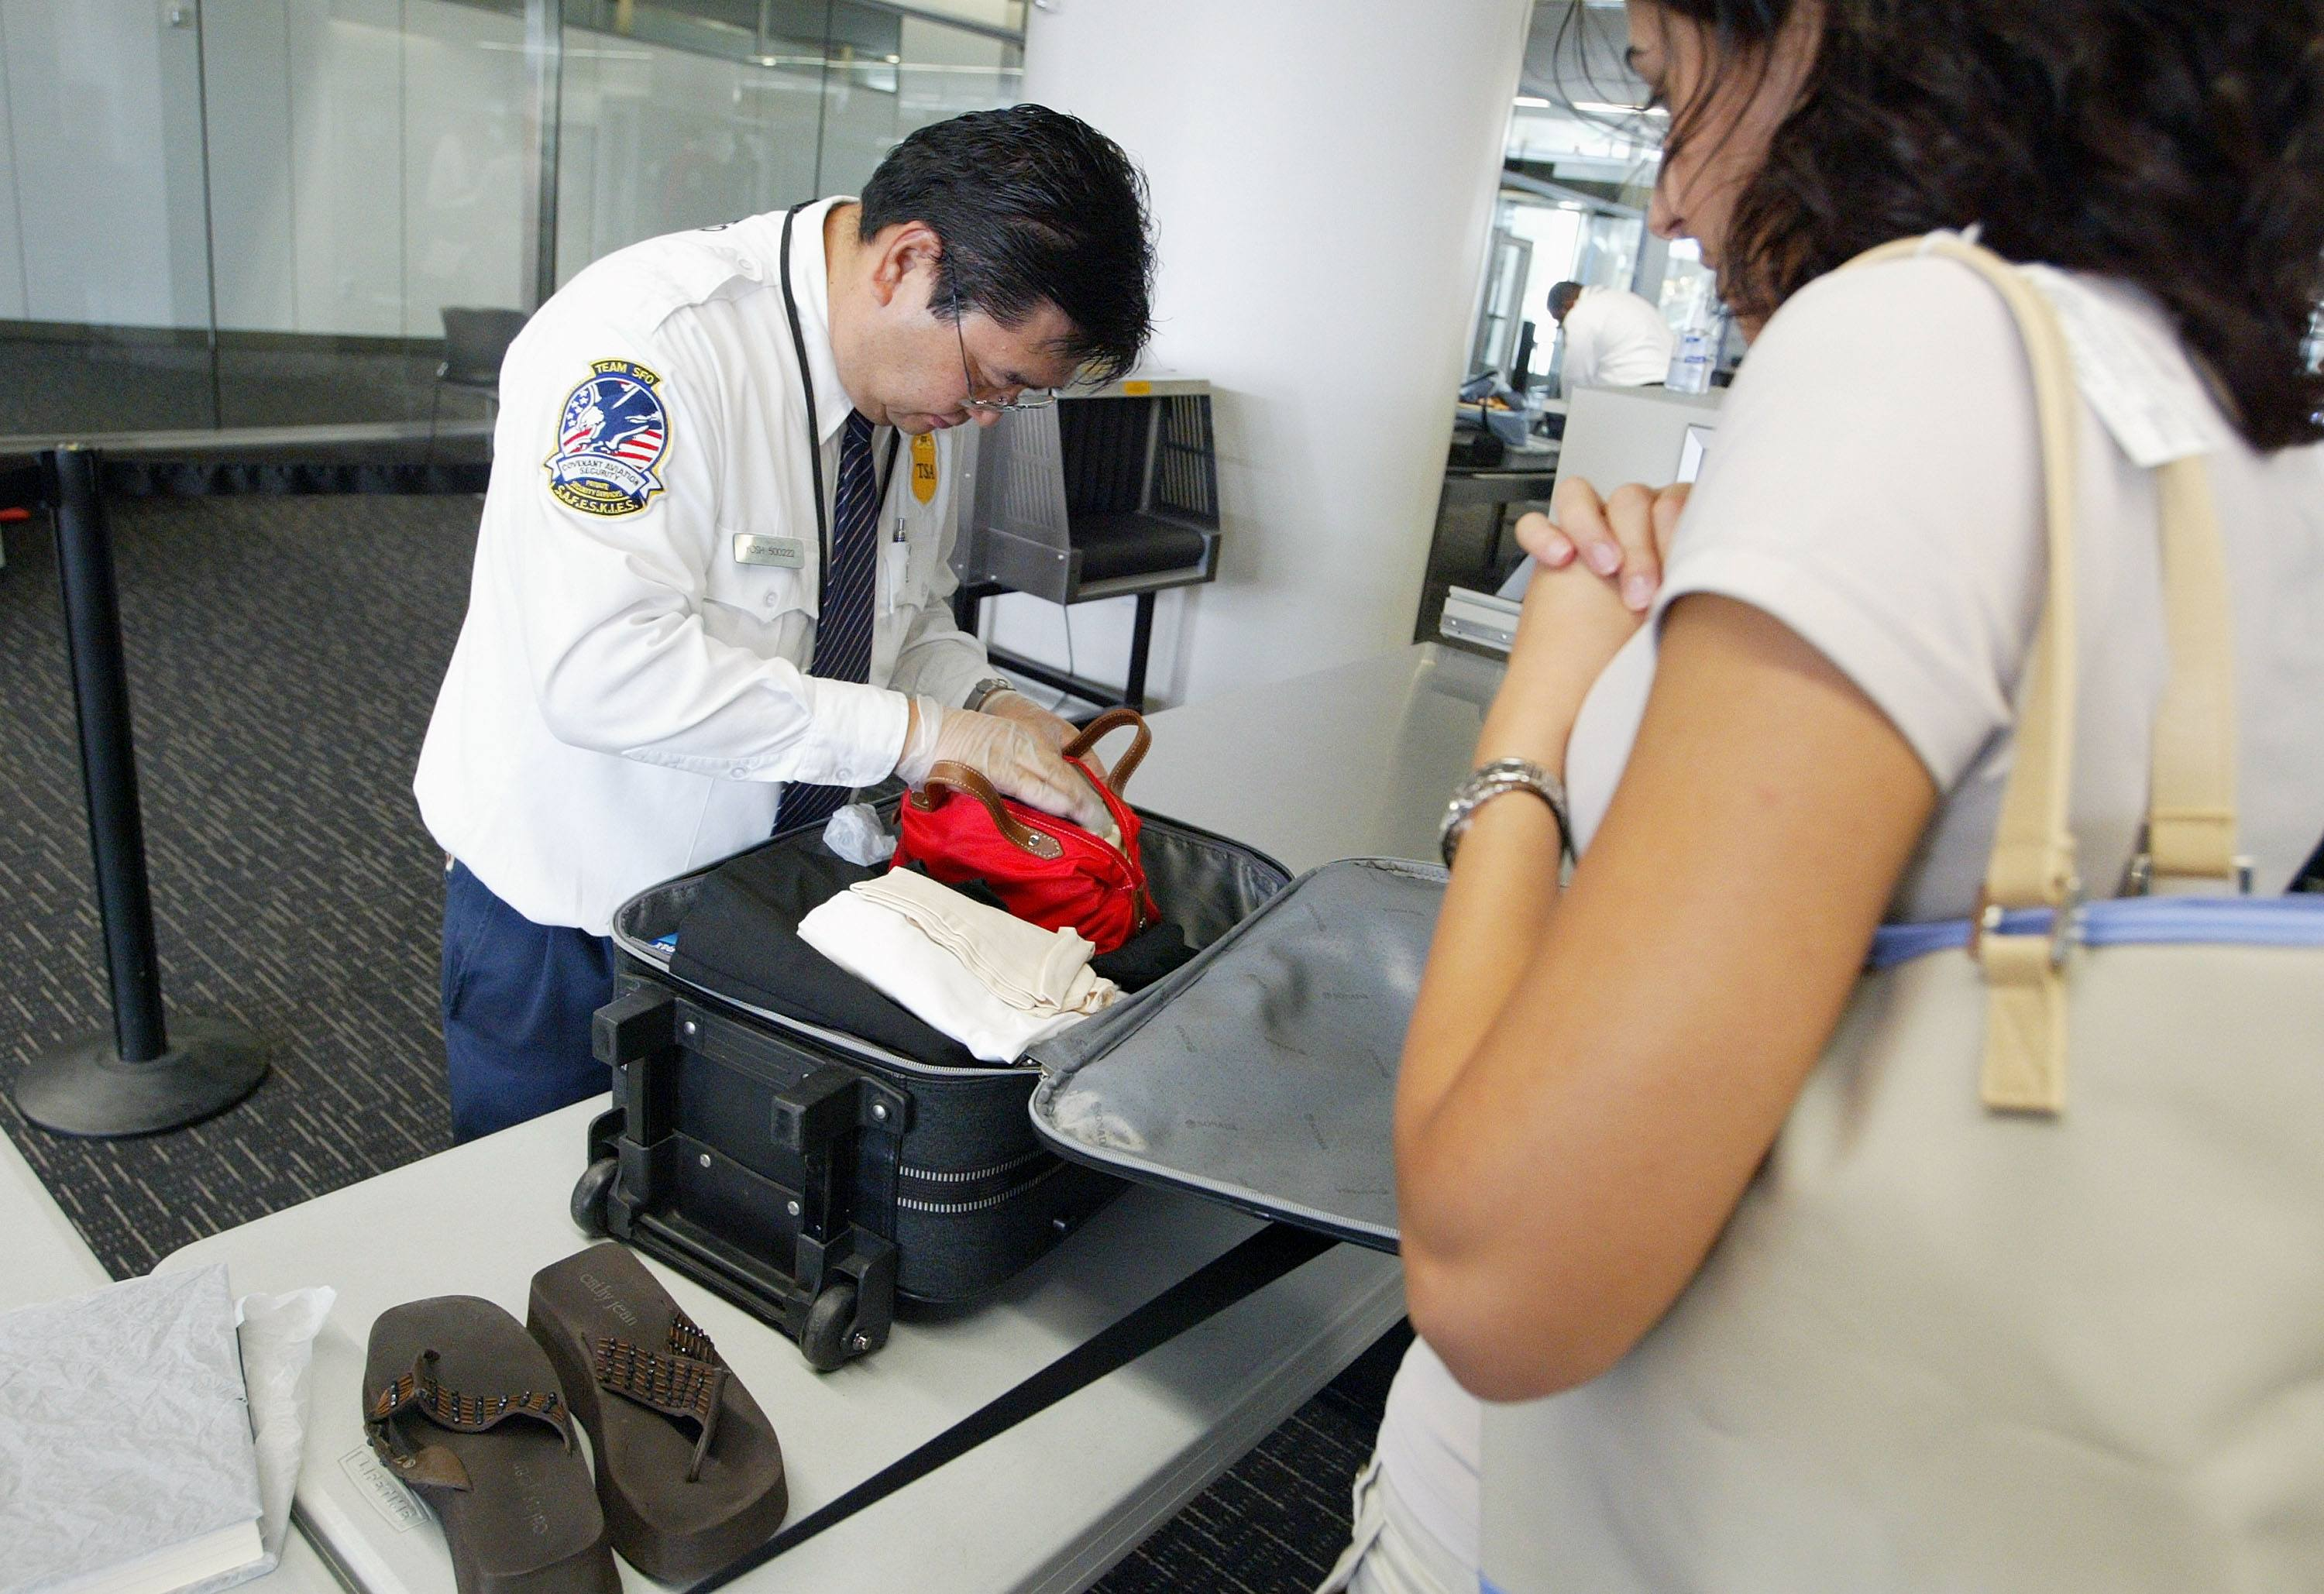 how to get weed through airport security 2017